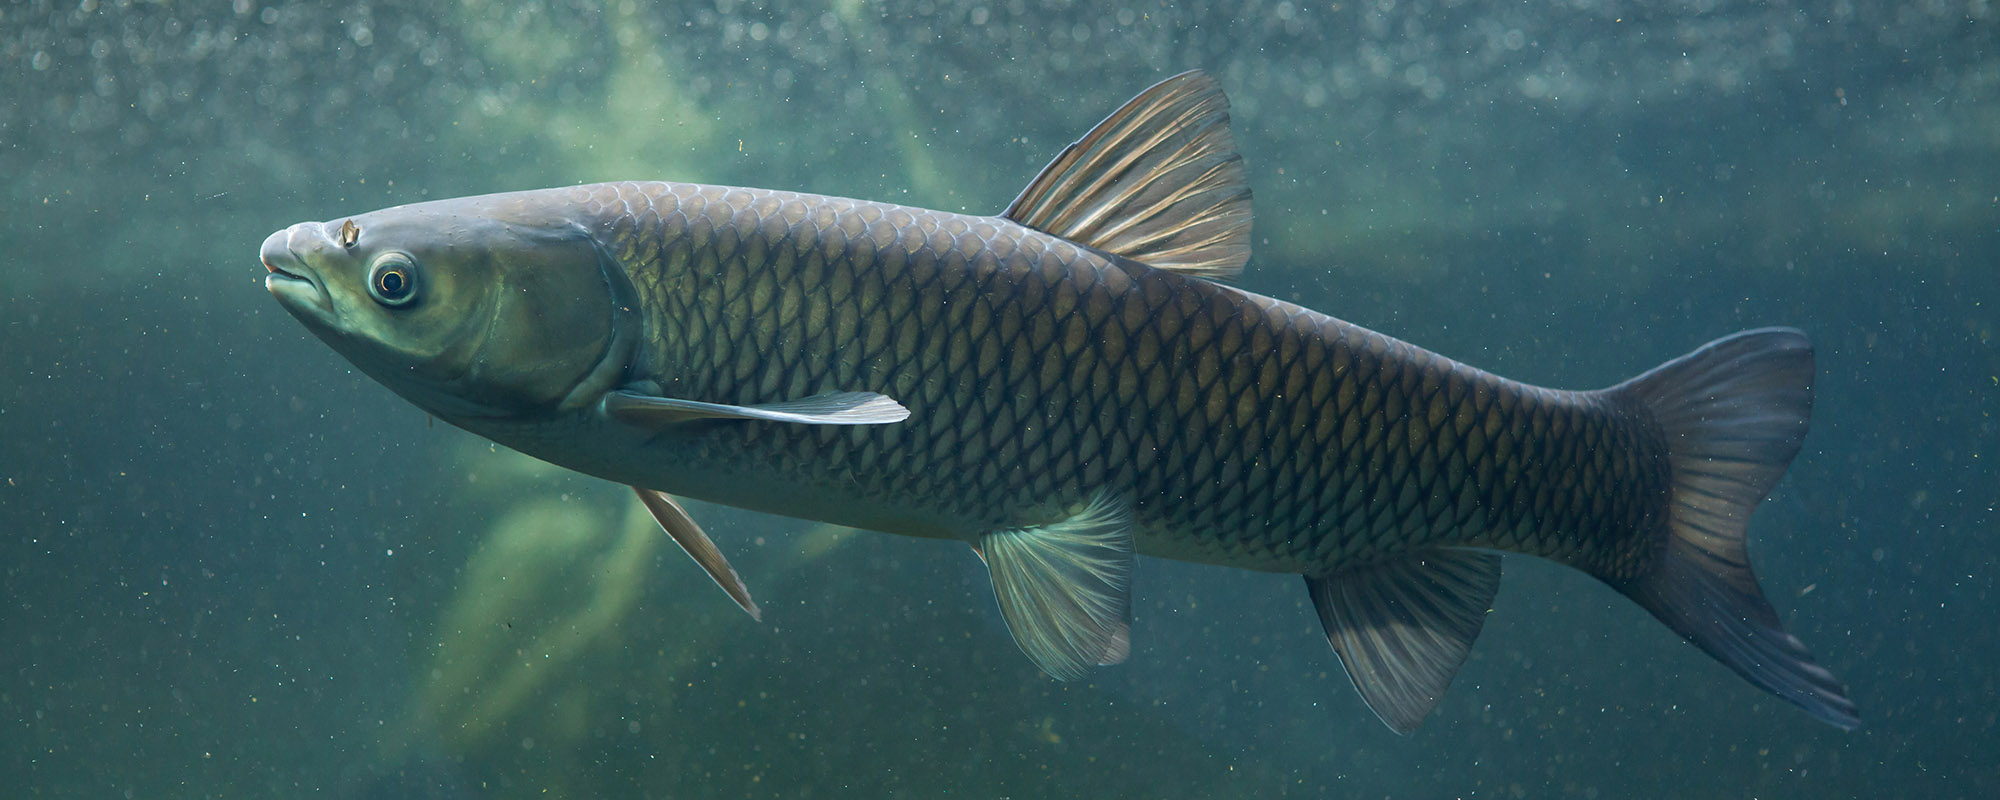 Rough fish removal a good thing not so fast for White amur fish